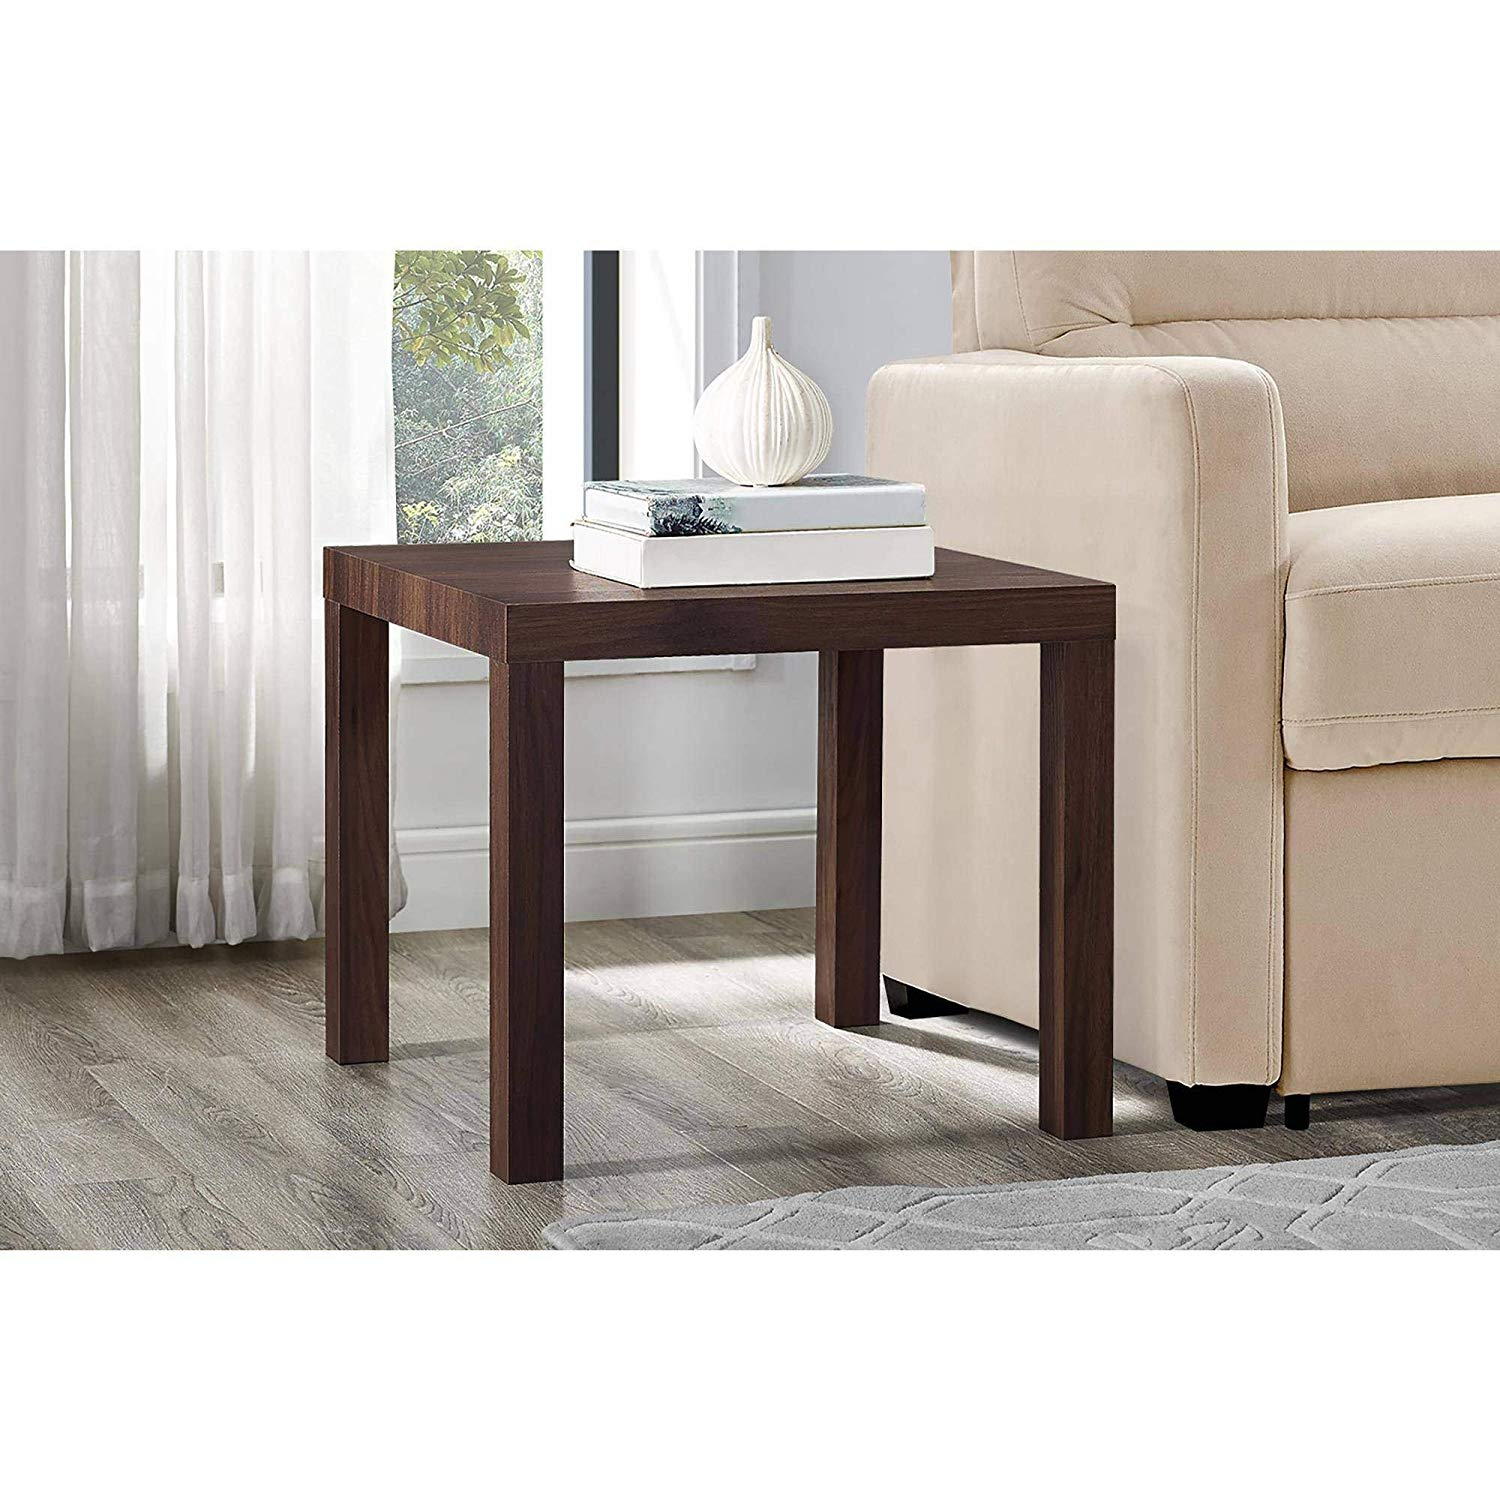 mainstays parsons square end table multiple colors espresso canyon walnut kitchen dining ashley signature chairs black accent can you spray paint finished wood kure furniture inch